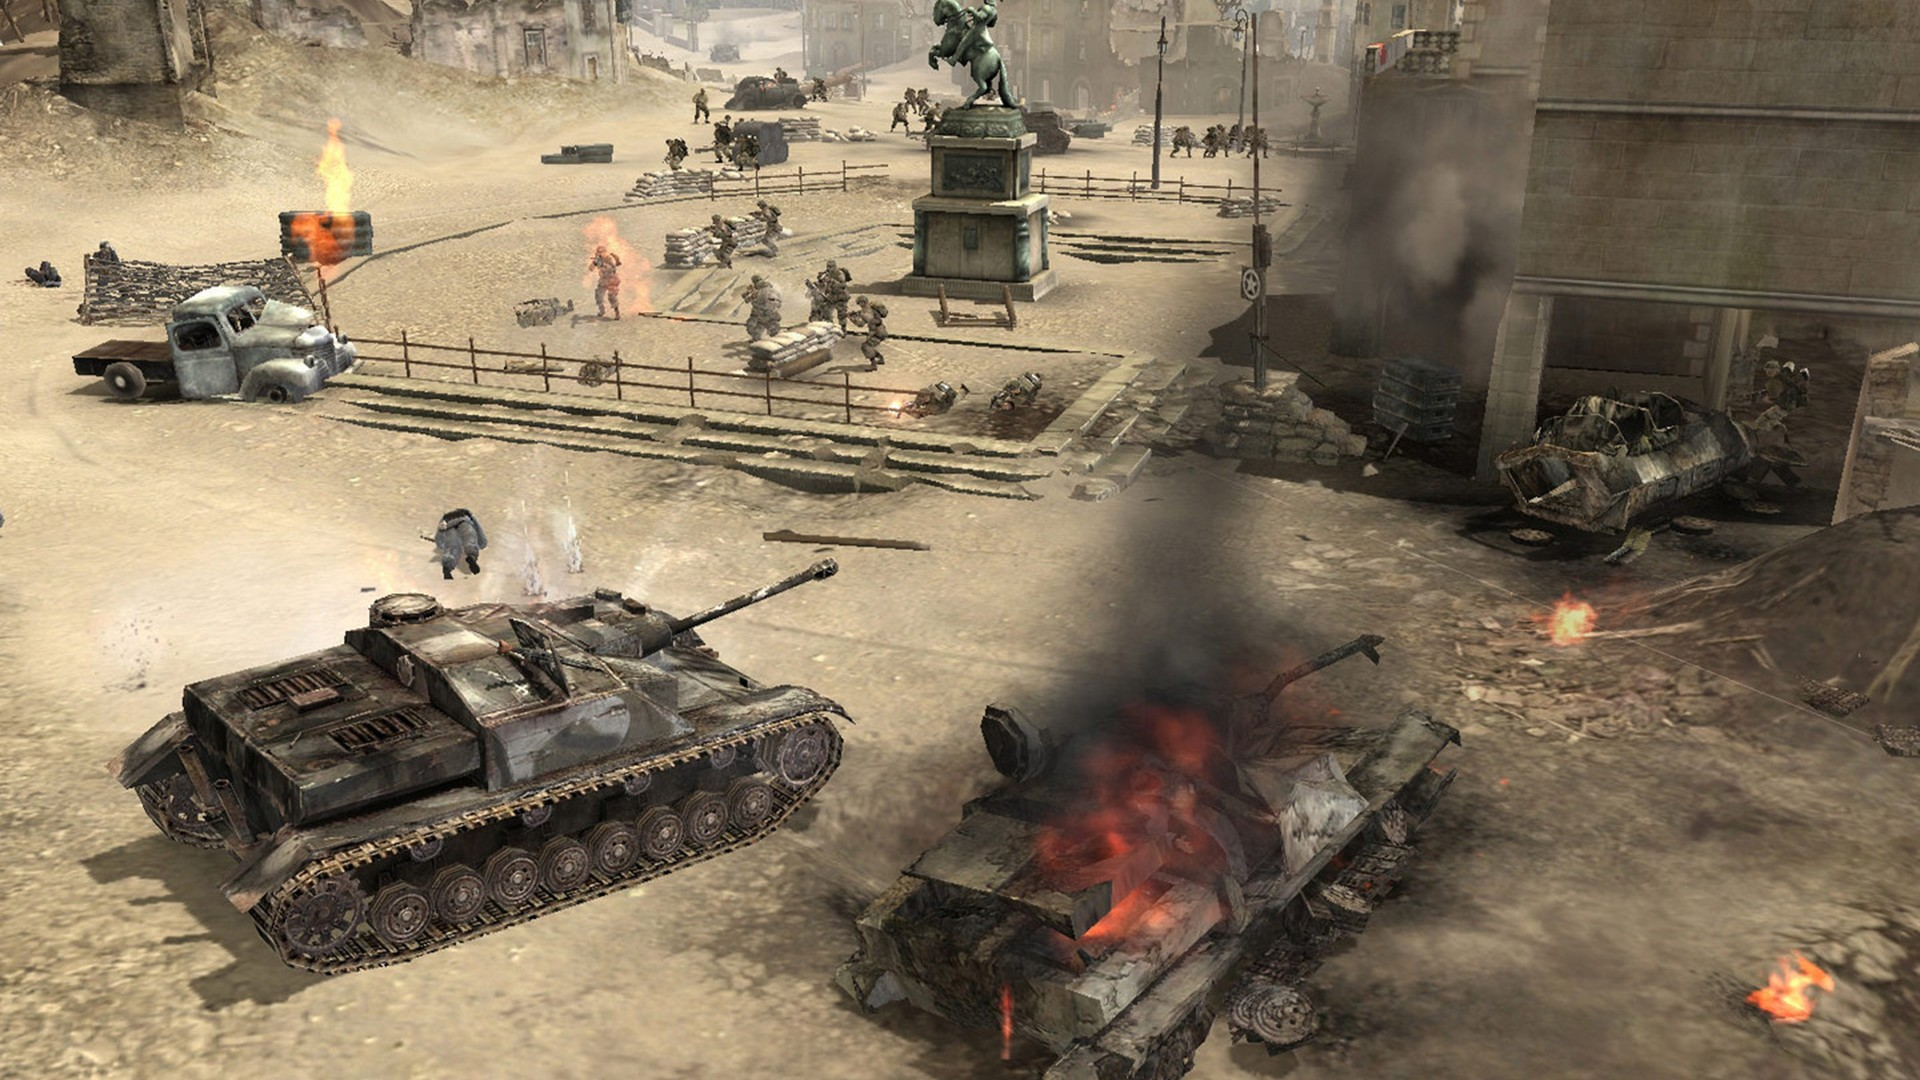 Coh 2 Case Blue : Company of heroes archiv dcenter forum